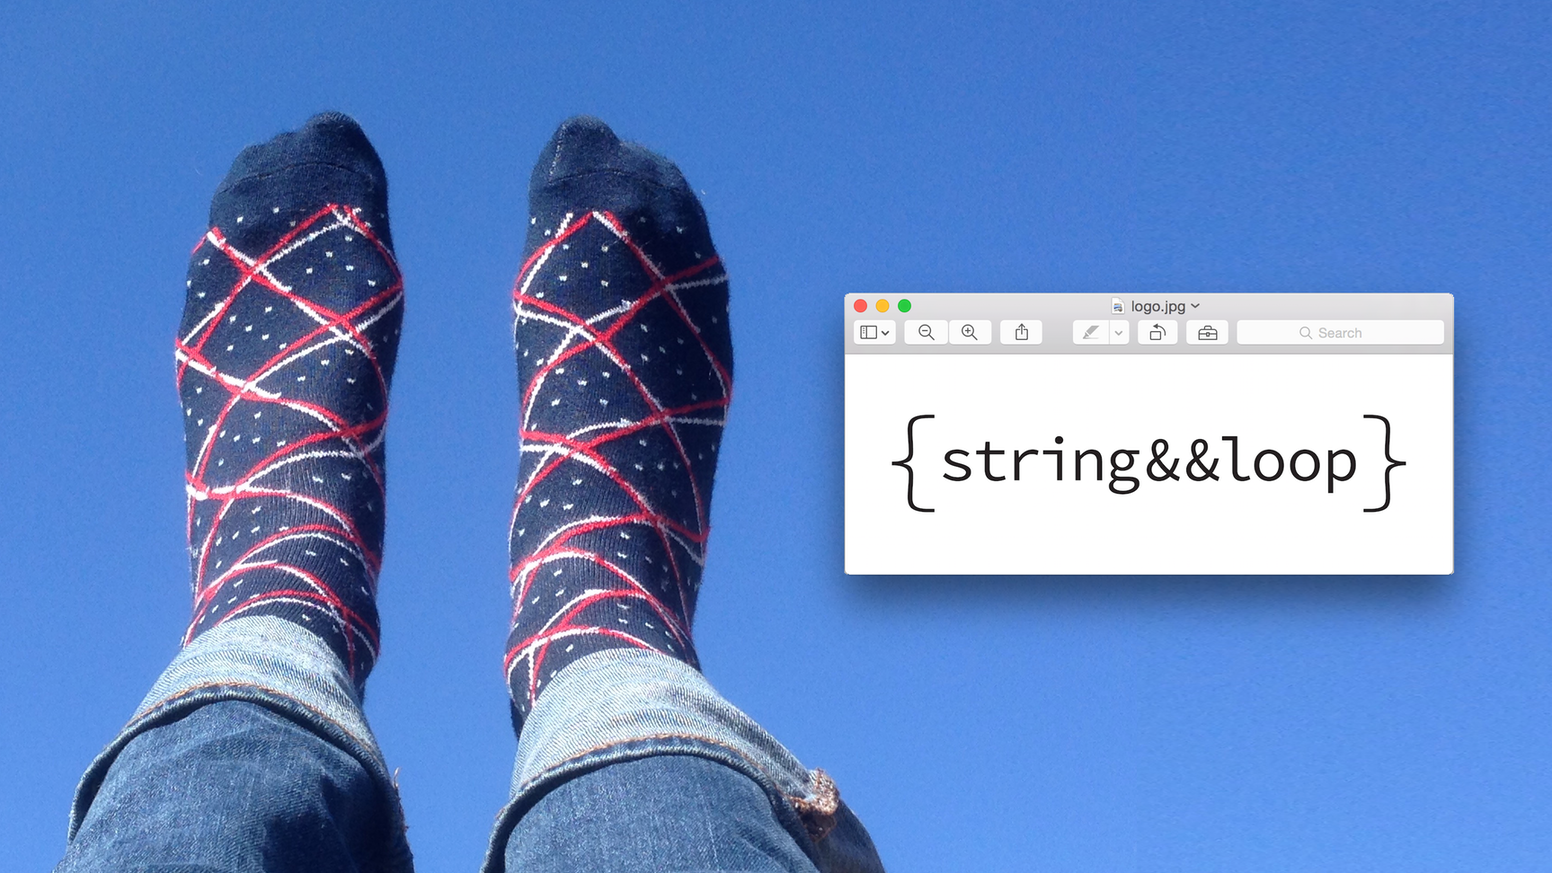 /*The world's first line of generatively designed knit socks. Remaining pairs from the first line available at stringandloop.com*/